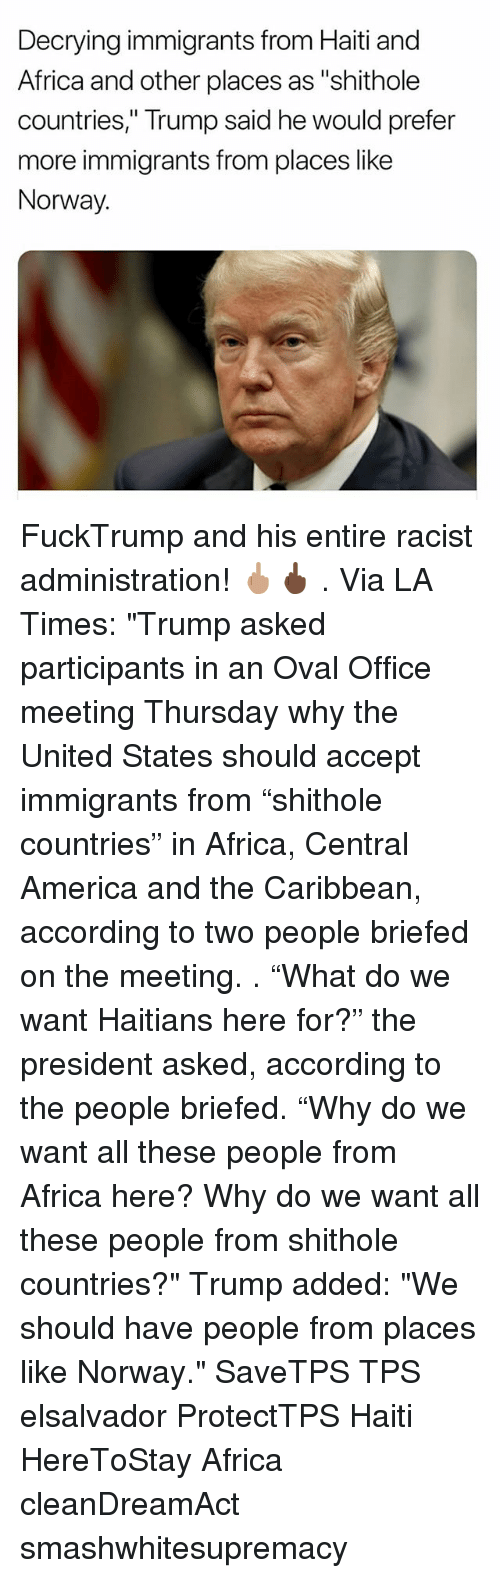 """Africa, America, and Memes: Decrying immigrants from Haiti and  Africa and other places as """"shithole  countries,"""" Trump said he would prefer  more immigrants from places like  Norway. FuckTrump and his entire racist administration! 🖕🏽🖕🏿 . Via LA Times: """"Trump asked participants in an Oval Office meeting Thursday why the United States should accept immigrants from """"shithole countries"""" in Africa, Central America and the Caribbean, according to two people briefed on the meeting. . """"What do we want Haitians here for?"""" the president asked, according to the people briefed. """"Why do we want all these people from Africa here? Why do we want all these people from shithole countries?"""" Trump added: """"We should have people from places like Norway."""" SaveTPS TPS elsalvador ProtectTPS Haiti HereToStay Africa cleanDreamAct smashwhitesupremacy"""